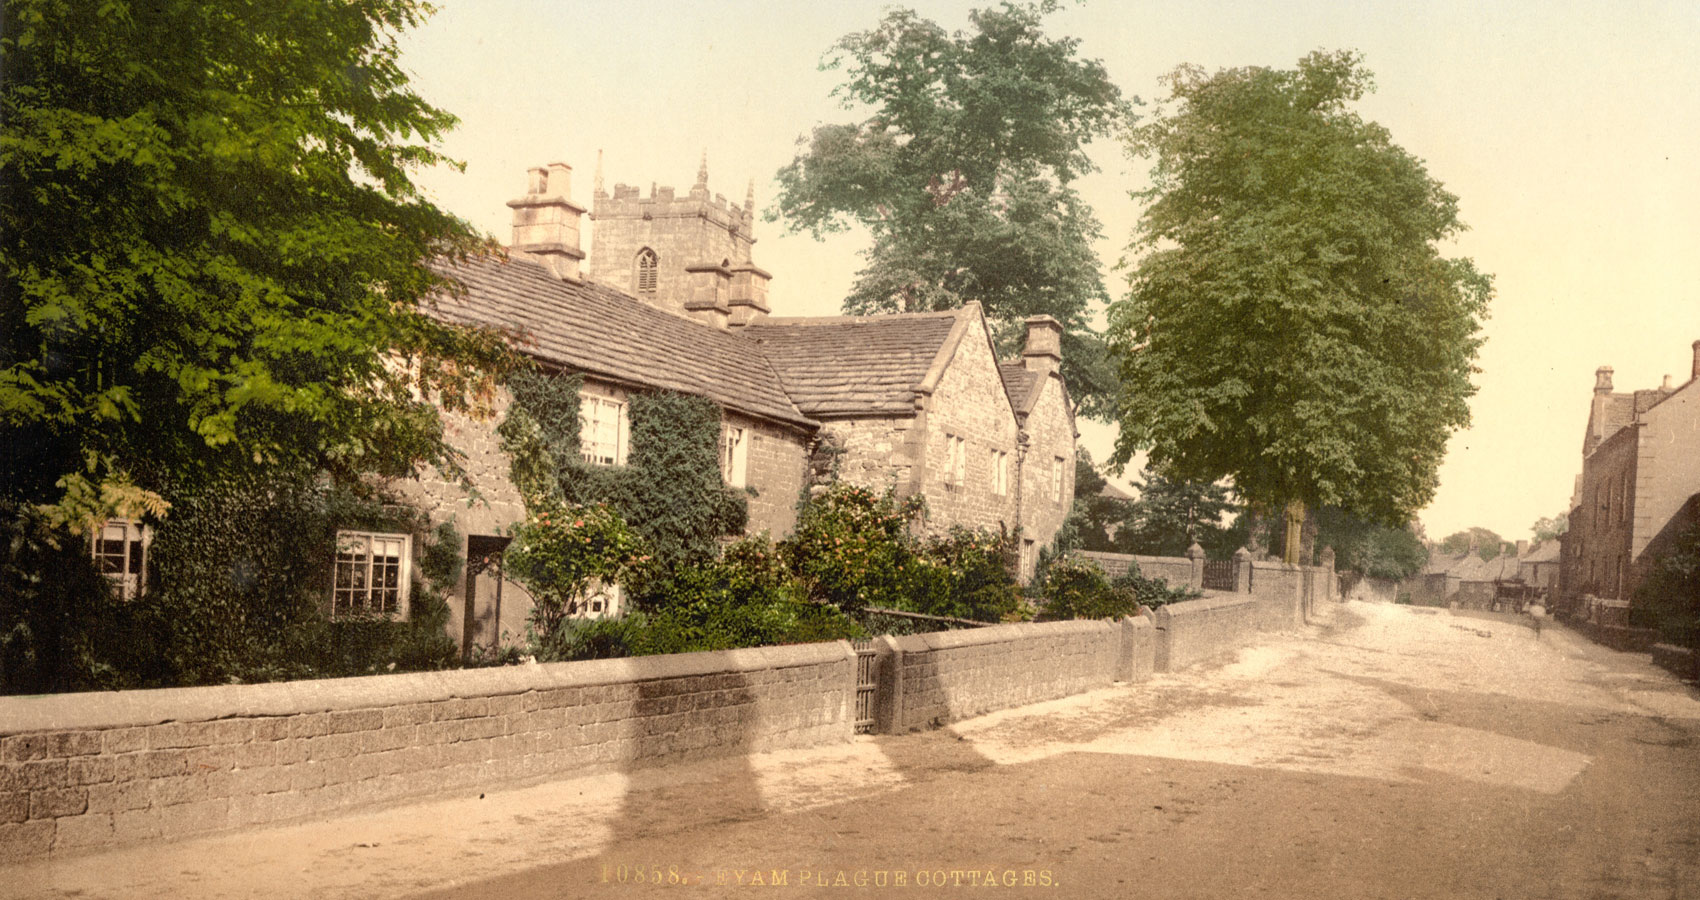 Elizabeth Hancock Reveals Eyam Plague Village, poem by Jordan Trethewey at Spillwords.com